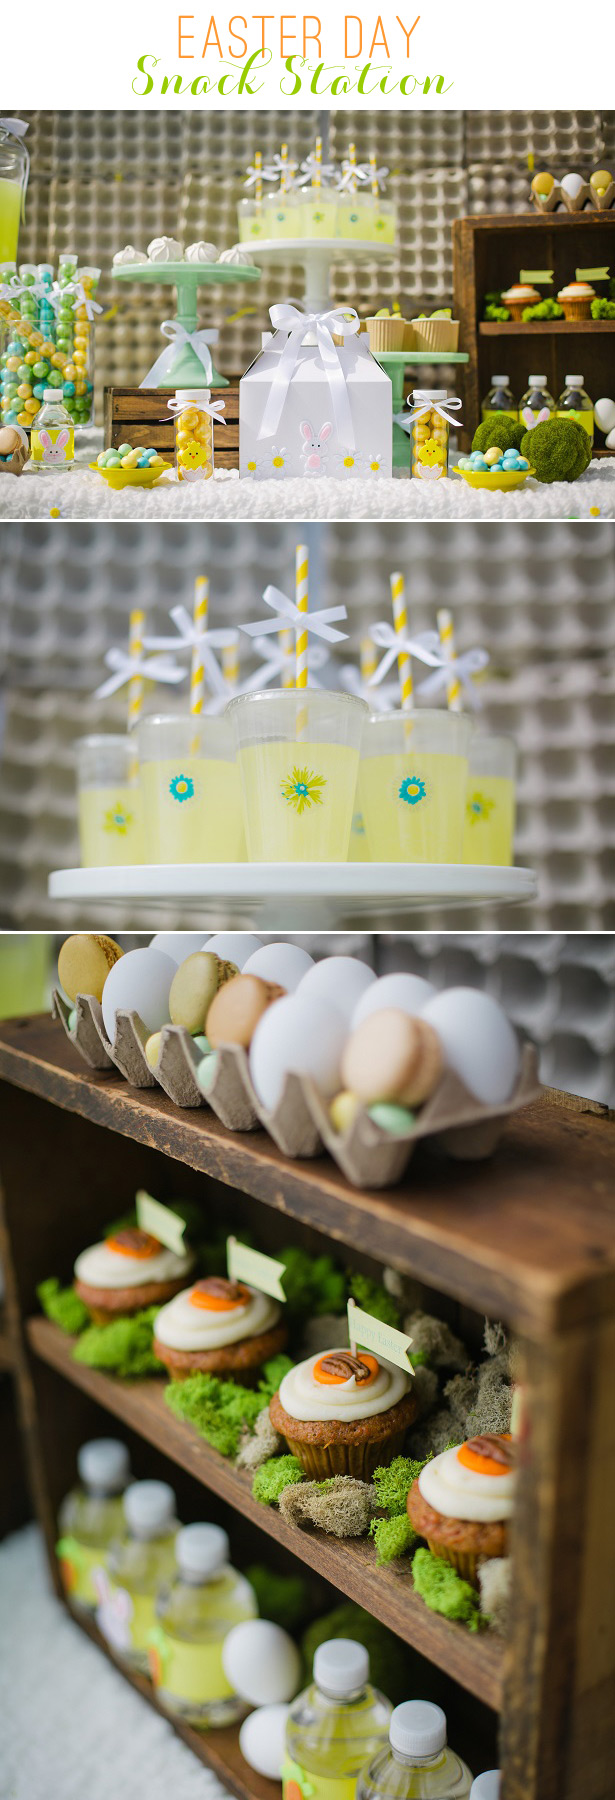 Easter snack station something chic